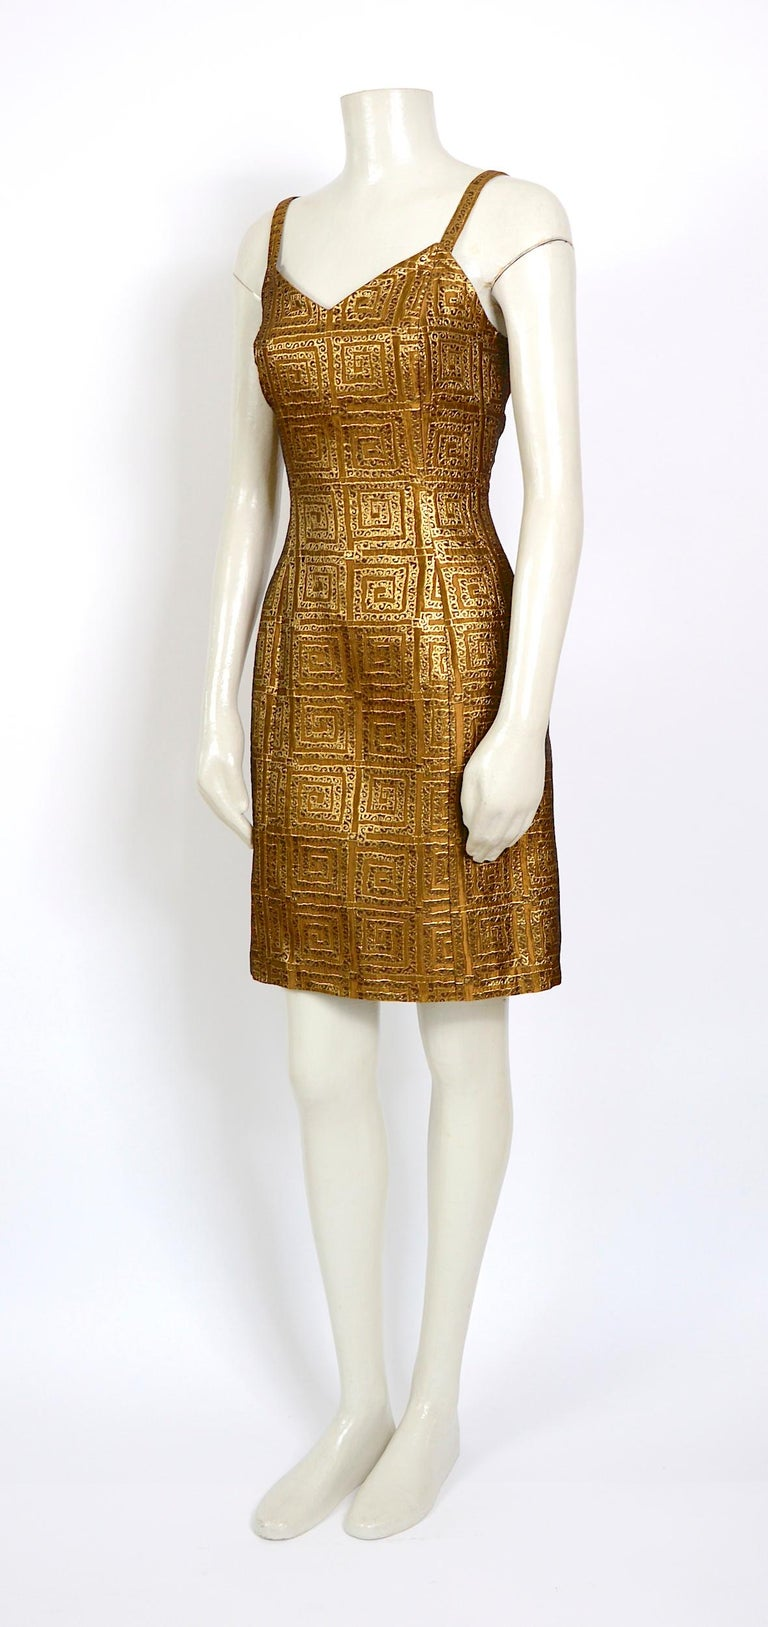 Givenchy vintage 1990s gold bronze logo dress In Excellent Condition For Sale In Antwerp, BE